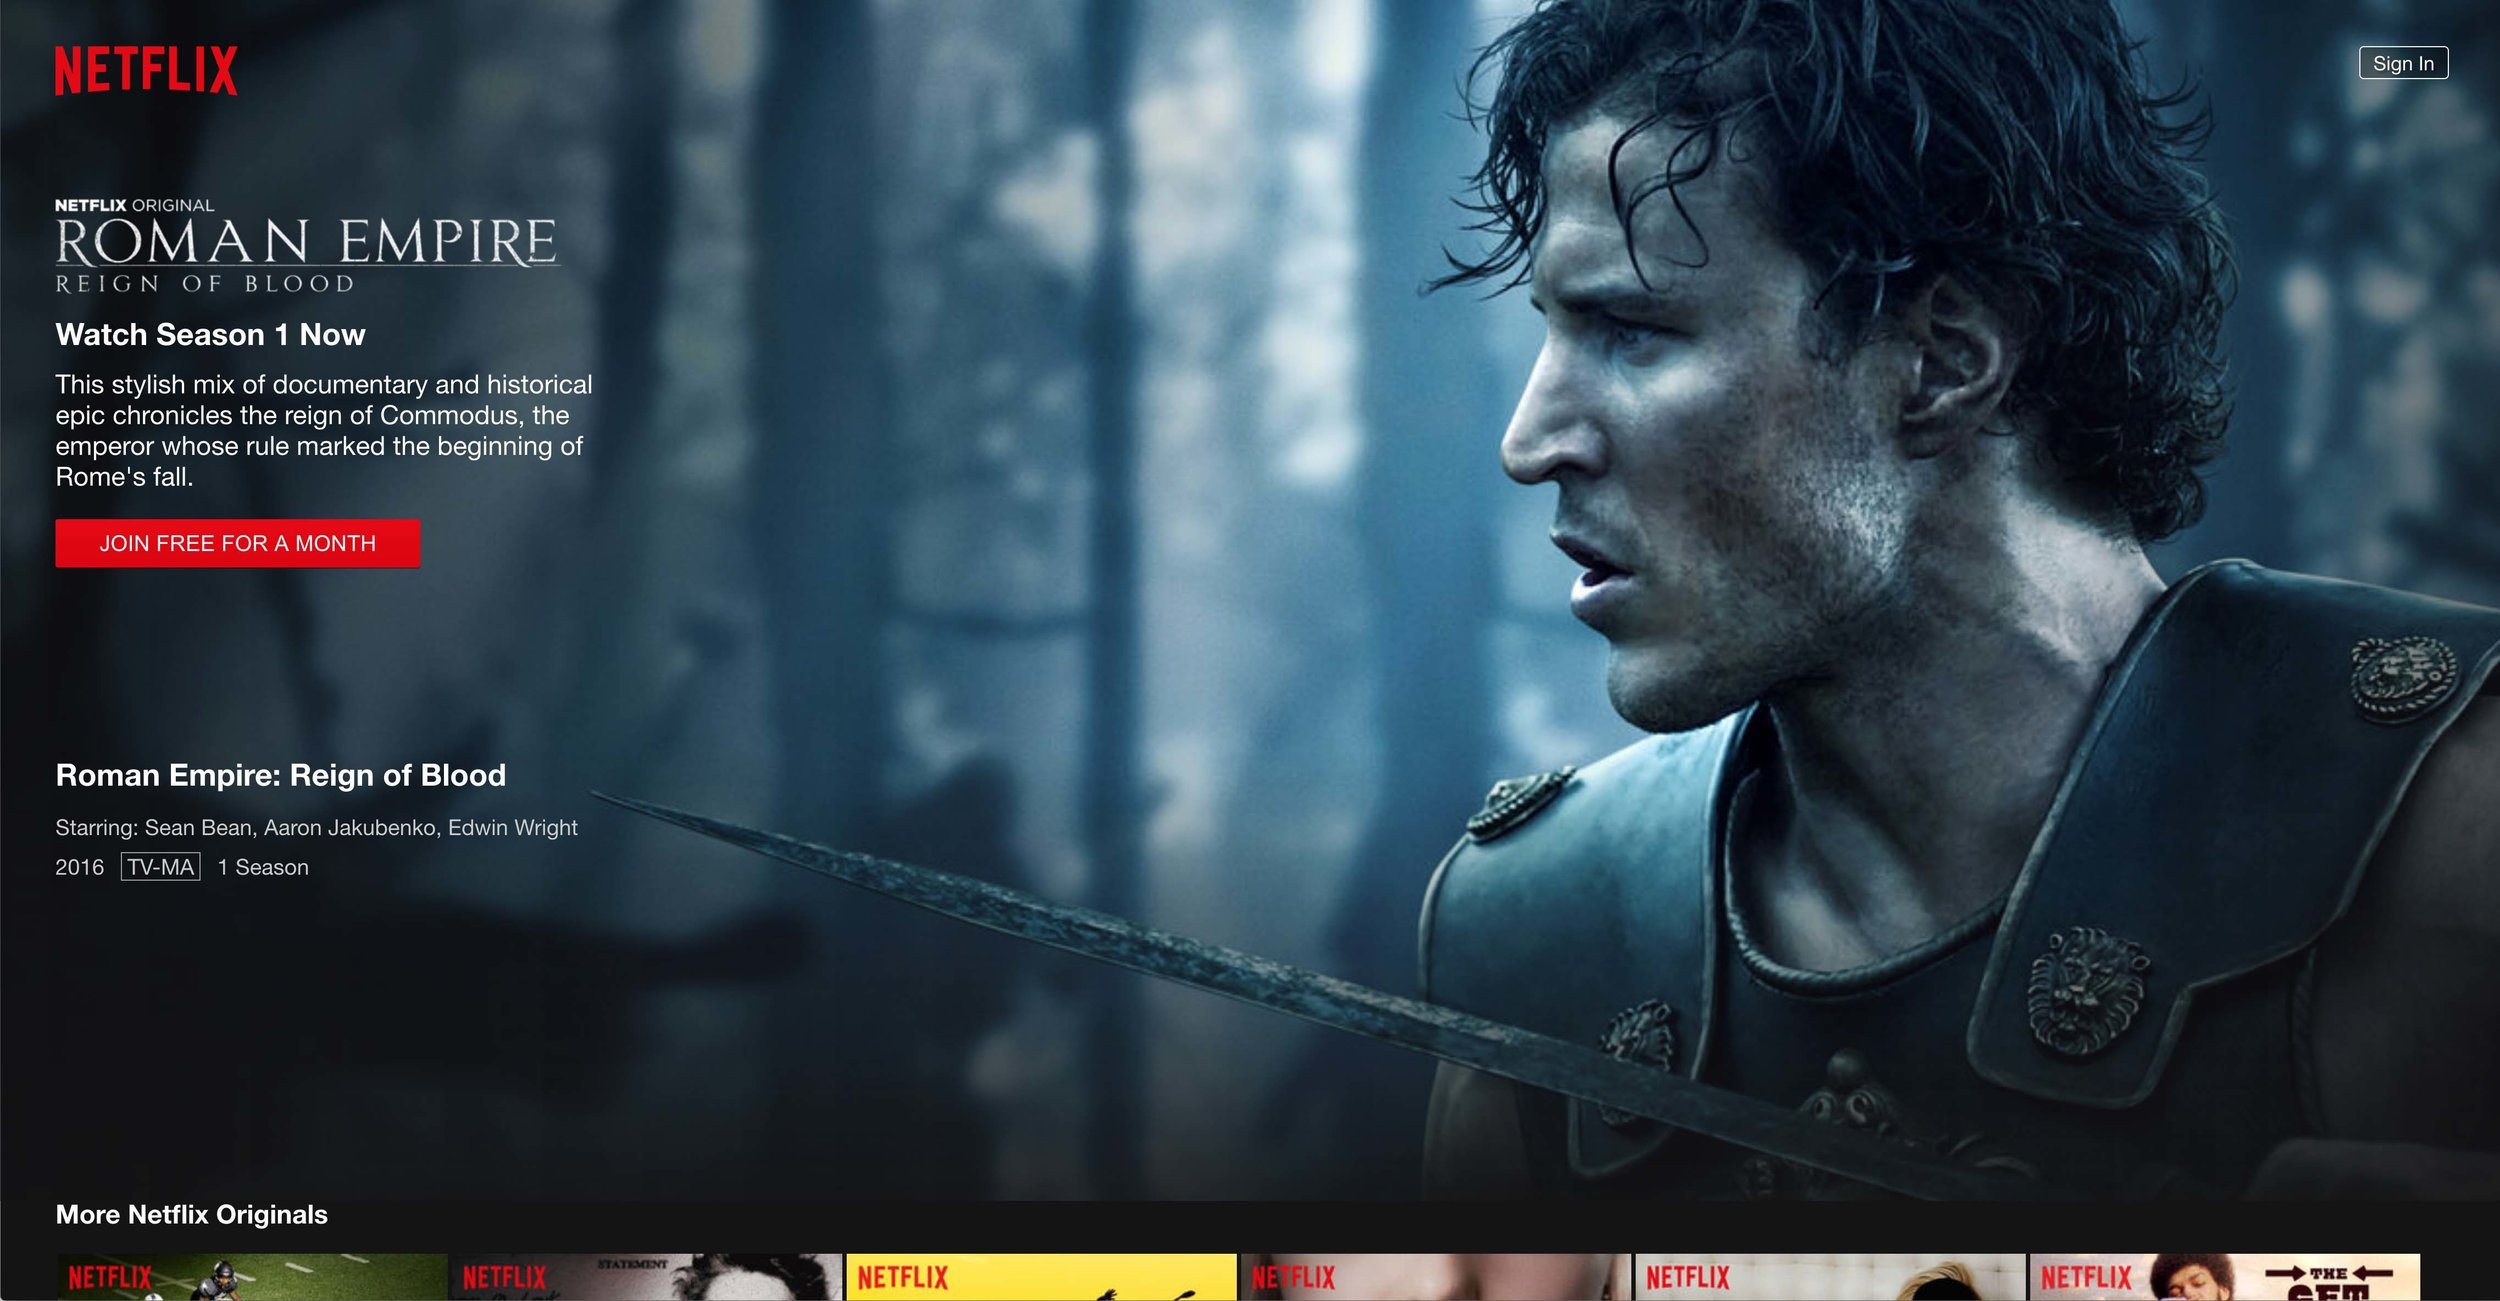 Netflix interface reference of Roman Empire: Reign of Blood